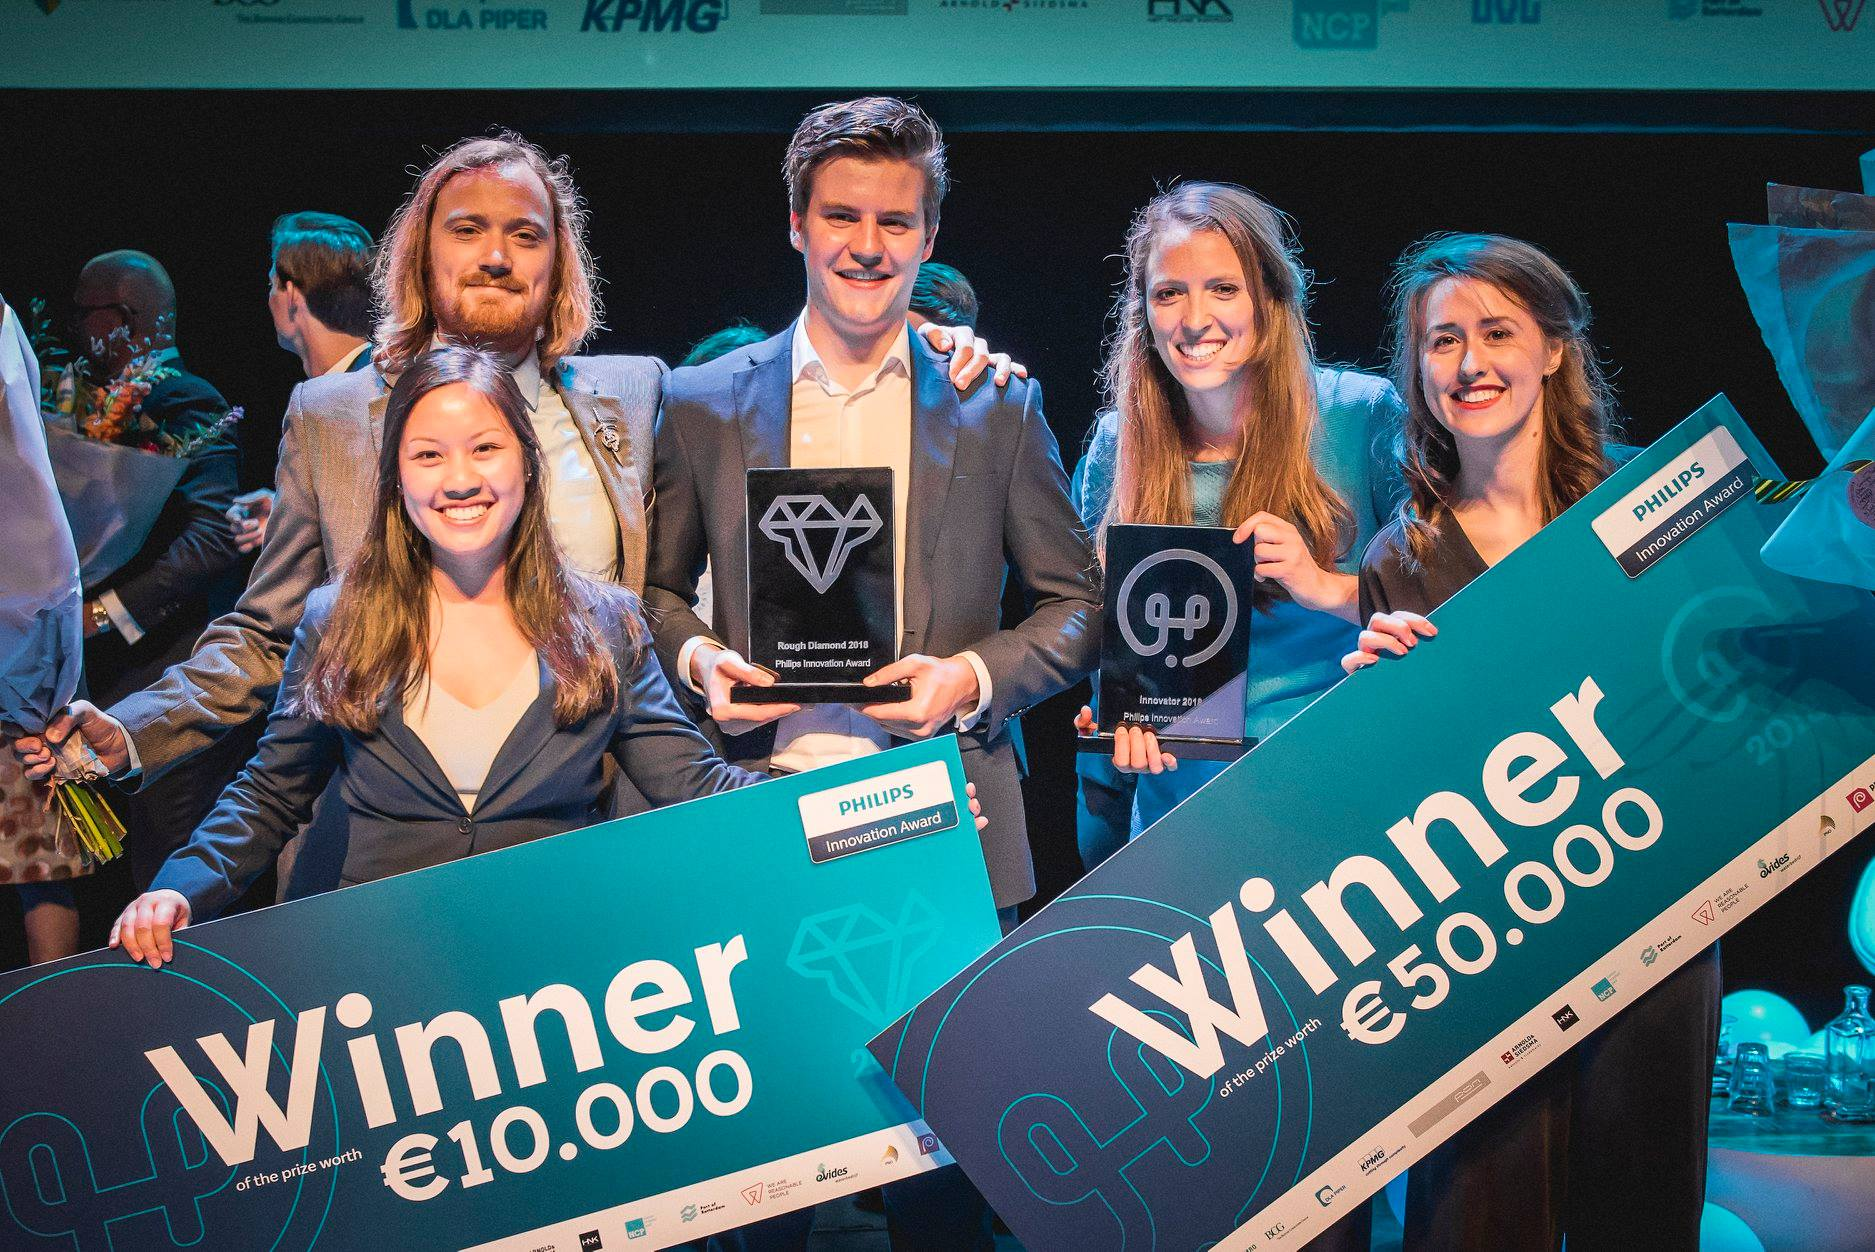 Closure: meest innovatieve start-up van Nederland